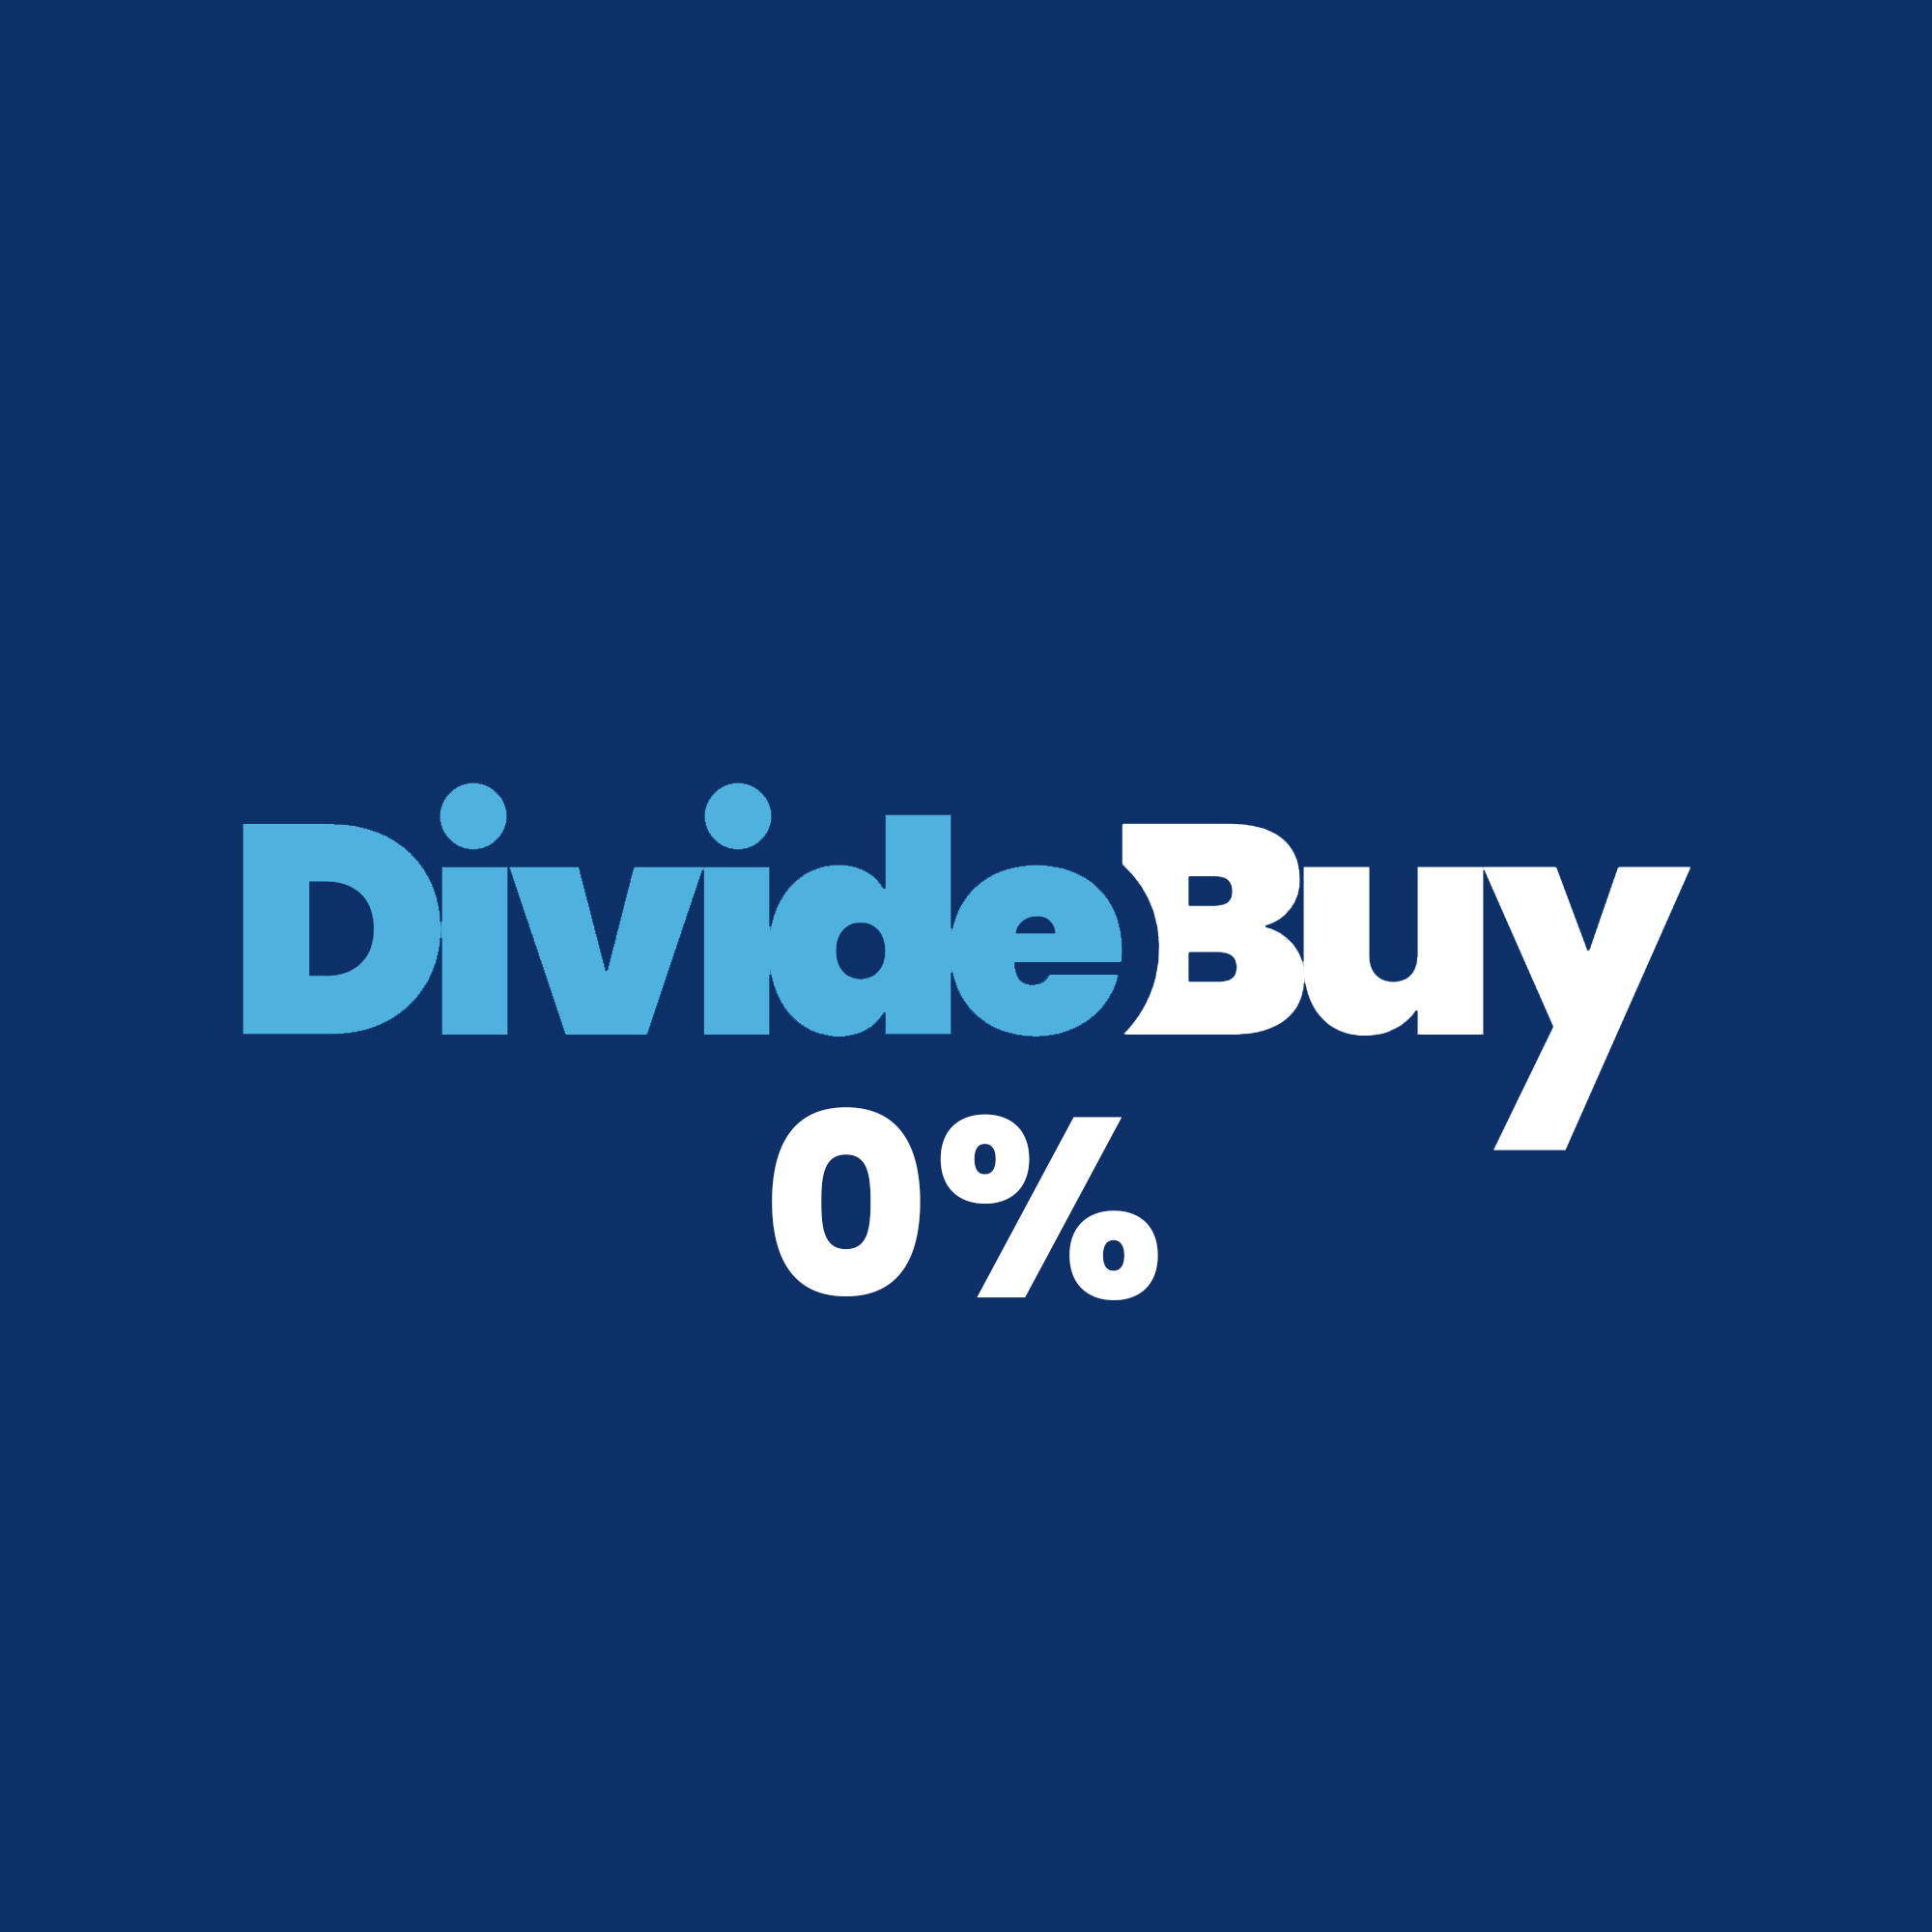 pay for your sofa using dividebuy finance